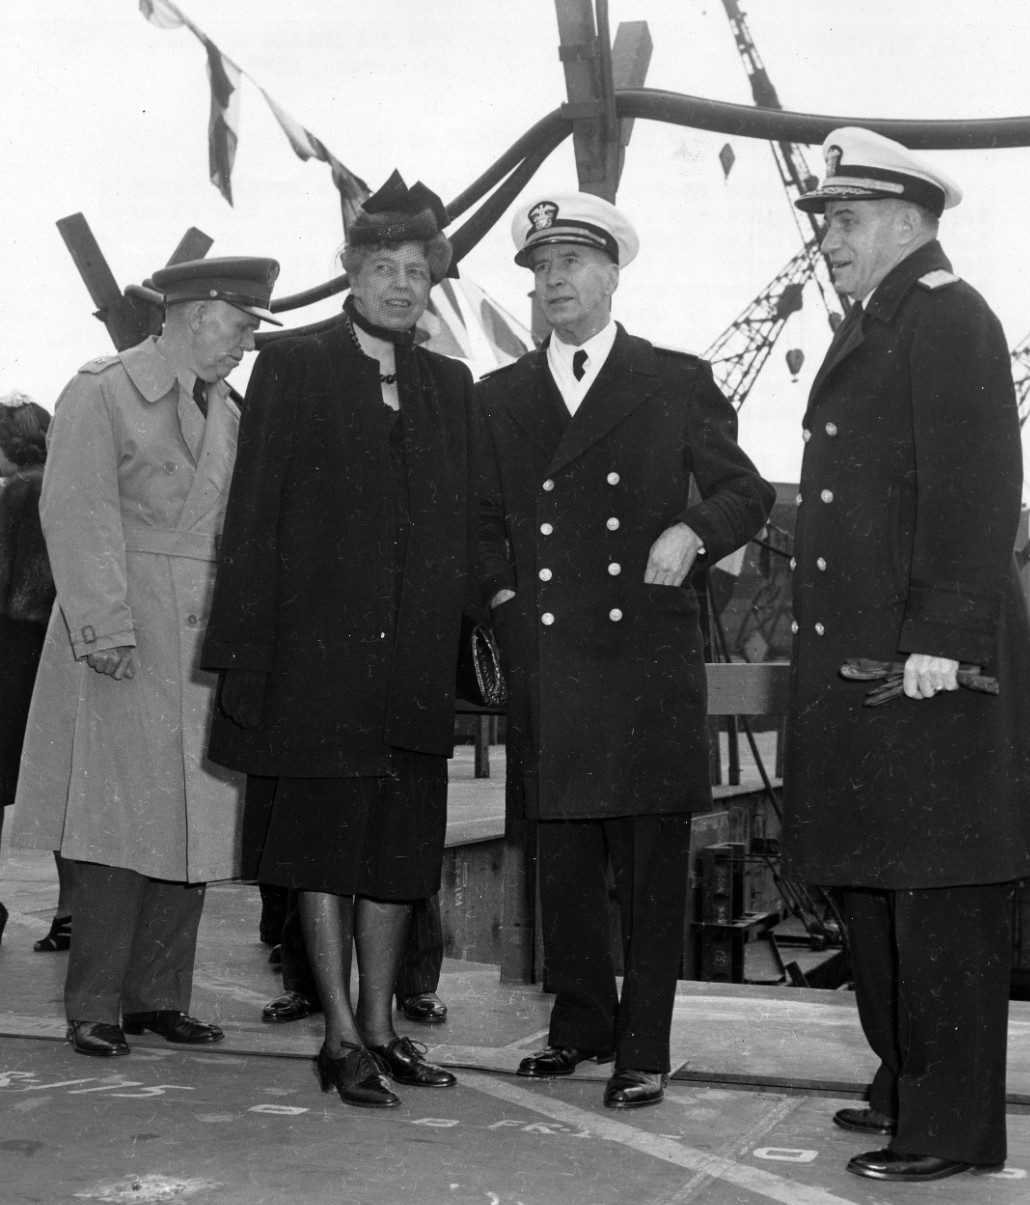 (Left–right) Gen. of the Army George C. Marshall Jr., USA, Army Chief of Staff, First Lady Eleanor Roosevelt, Flt. Adm. Ernest J. King, Chief of Naval Operations (CNO), and Commander in Chief United States Fleet, and Rear Adm. Freeland A. Daubin, Commander New York Navy Yard, observe Coral Sea (CVB-42) as she is launched, 29 April 1945. (Naval History and Heritage Command Photograph L38-76.02.03)